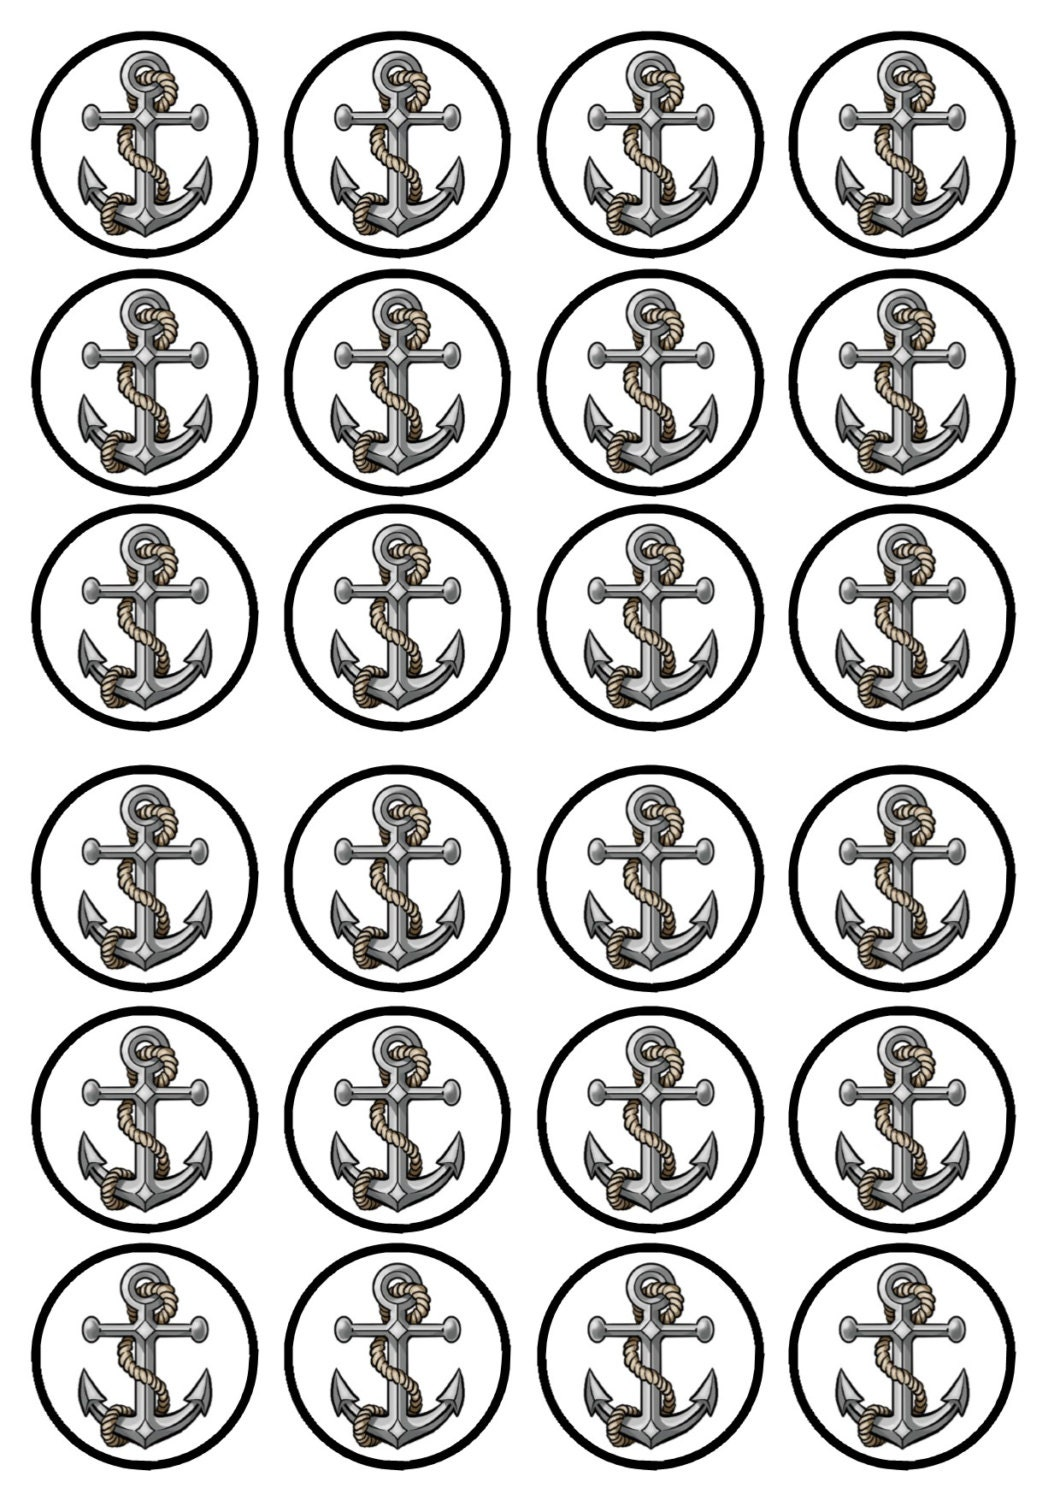 Navy Anchor Edible Wafer Rice Paper Cake furthermore White Pumpkin Decorations Wedding moreover Free Wedding Border Clipart further Pirate Ship Stencil furthermore CAc2Fpc29uYmxhbmNoZS5maWxlcy53b3JkcHJlc3MuY29tLzIwMTAvMDYvdWdseS13ZWRkaW5nLWNha2UuanBn. on us navy party decoration ideas